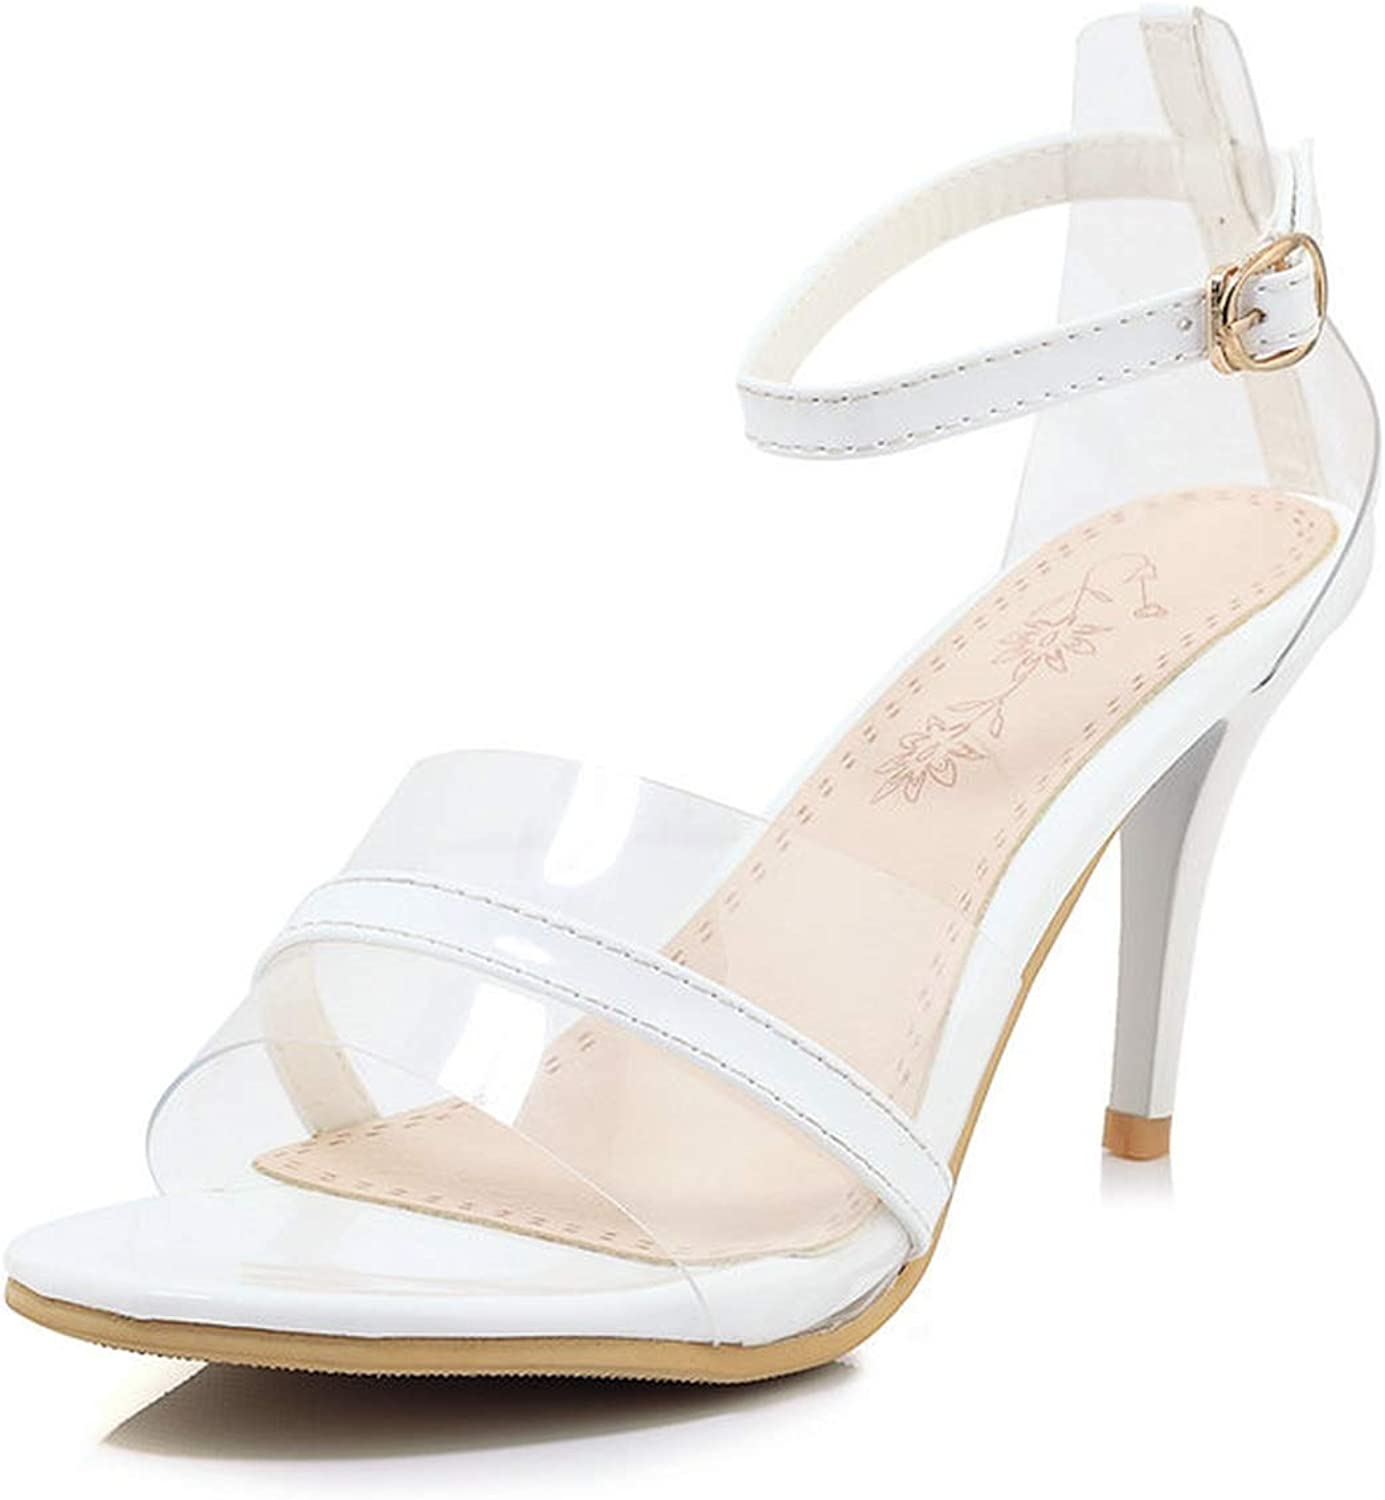 Women Pumps Pu Leather Transparent Round Open-Toed Thin High Heel Buckle Party Sandals 34-43